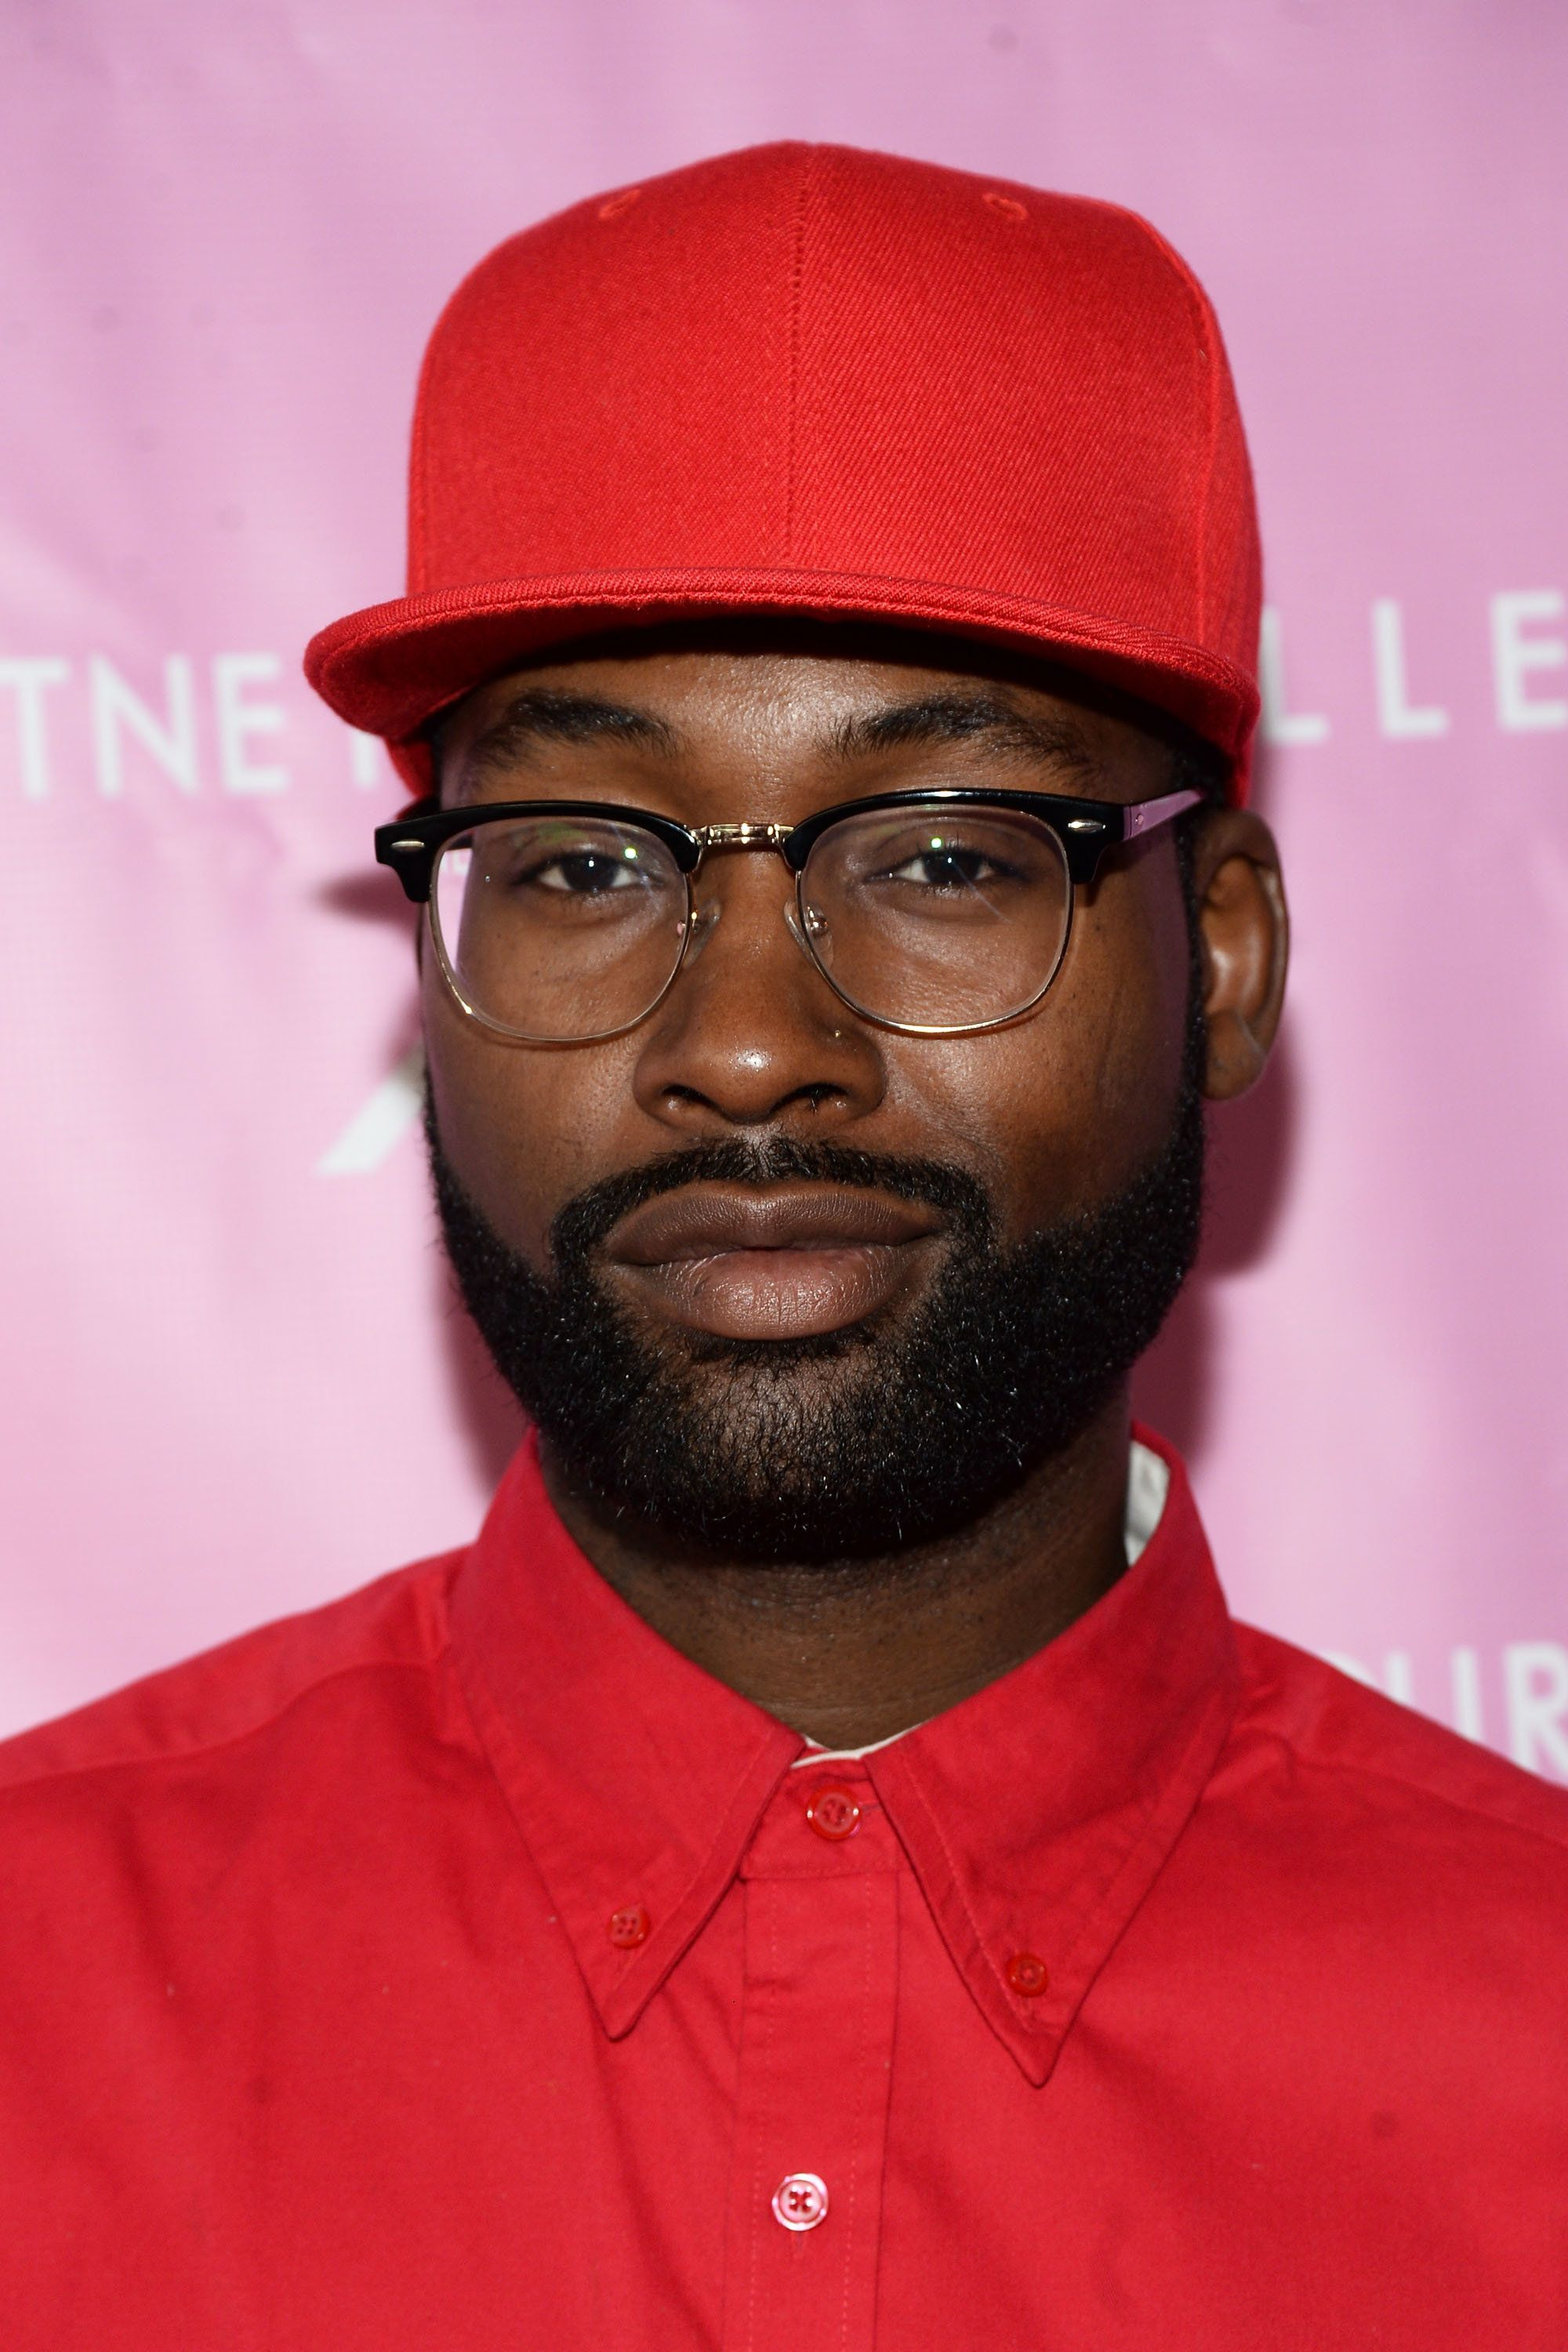 LOS ANGELES, CA - AUGUST 25:  Fashion designer Mychael Knight attends the Courtney Allegra VIP Store Opening and Fashion Show on August 25, 2016 in Los Angeles, California.  (Photo by Matt Winkelmeyer/Getty Images for Art Hearts Fashion)